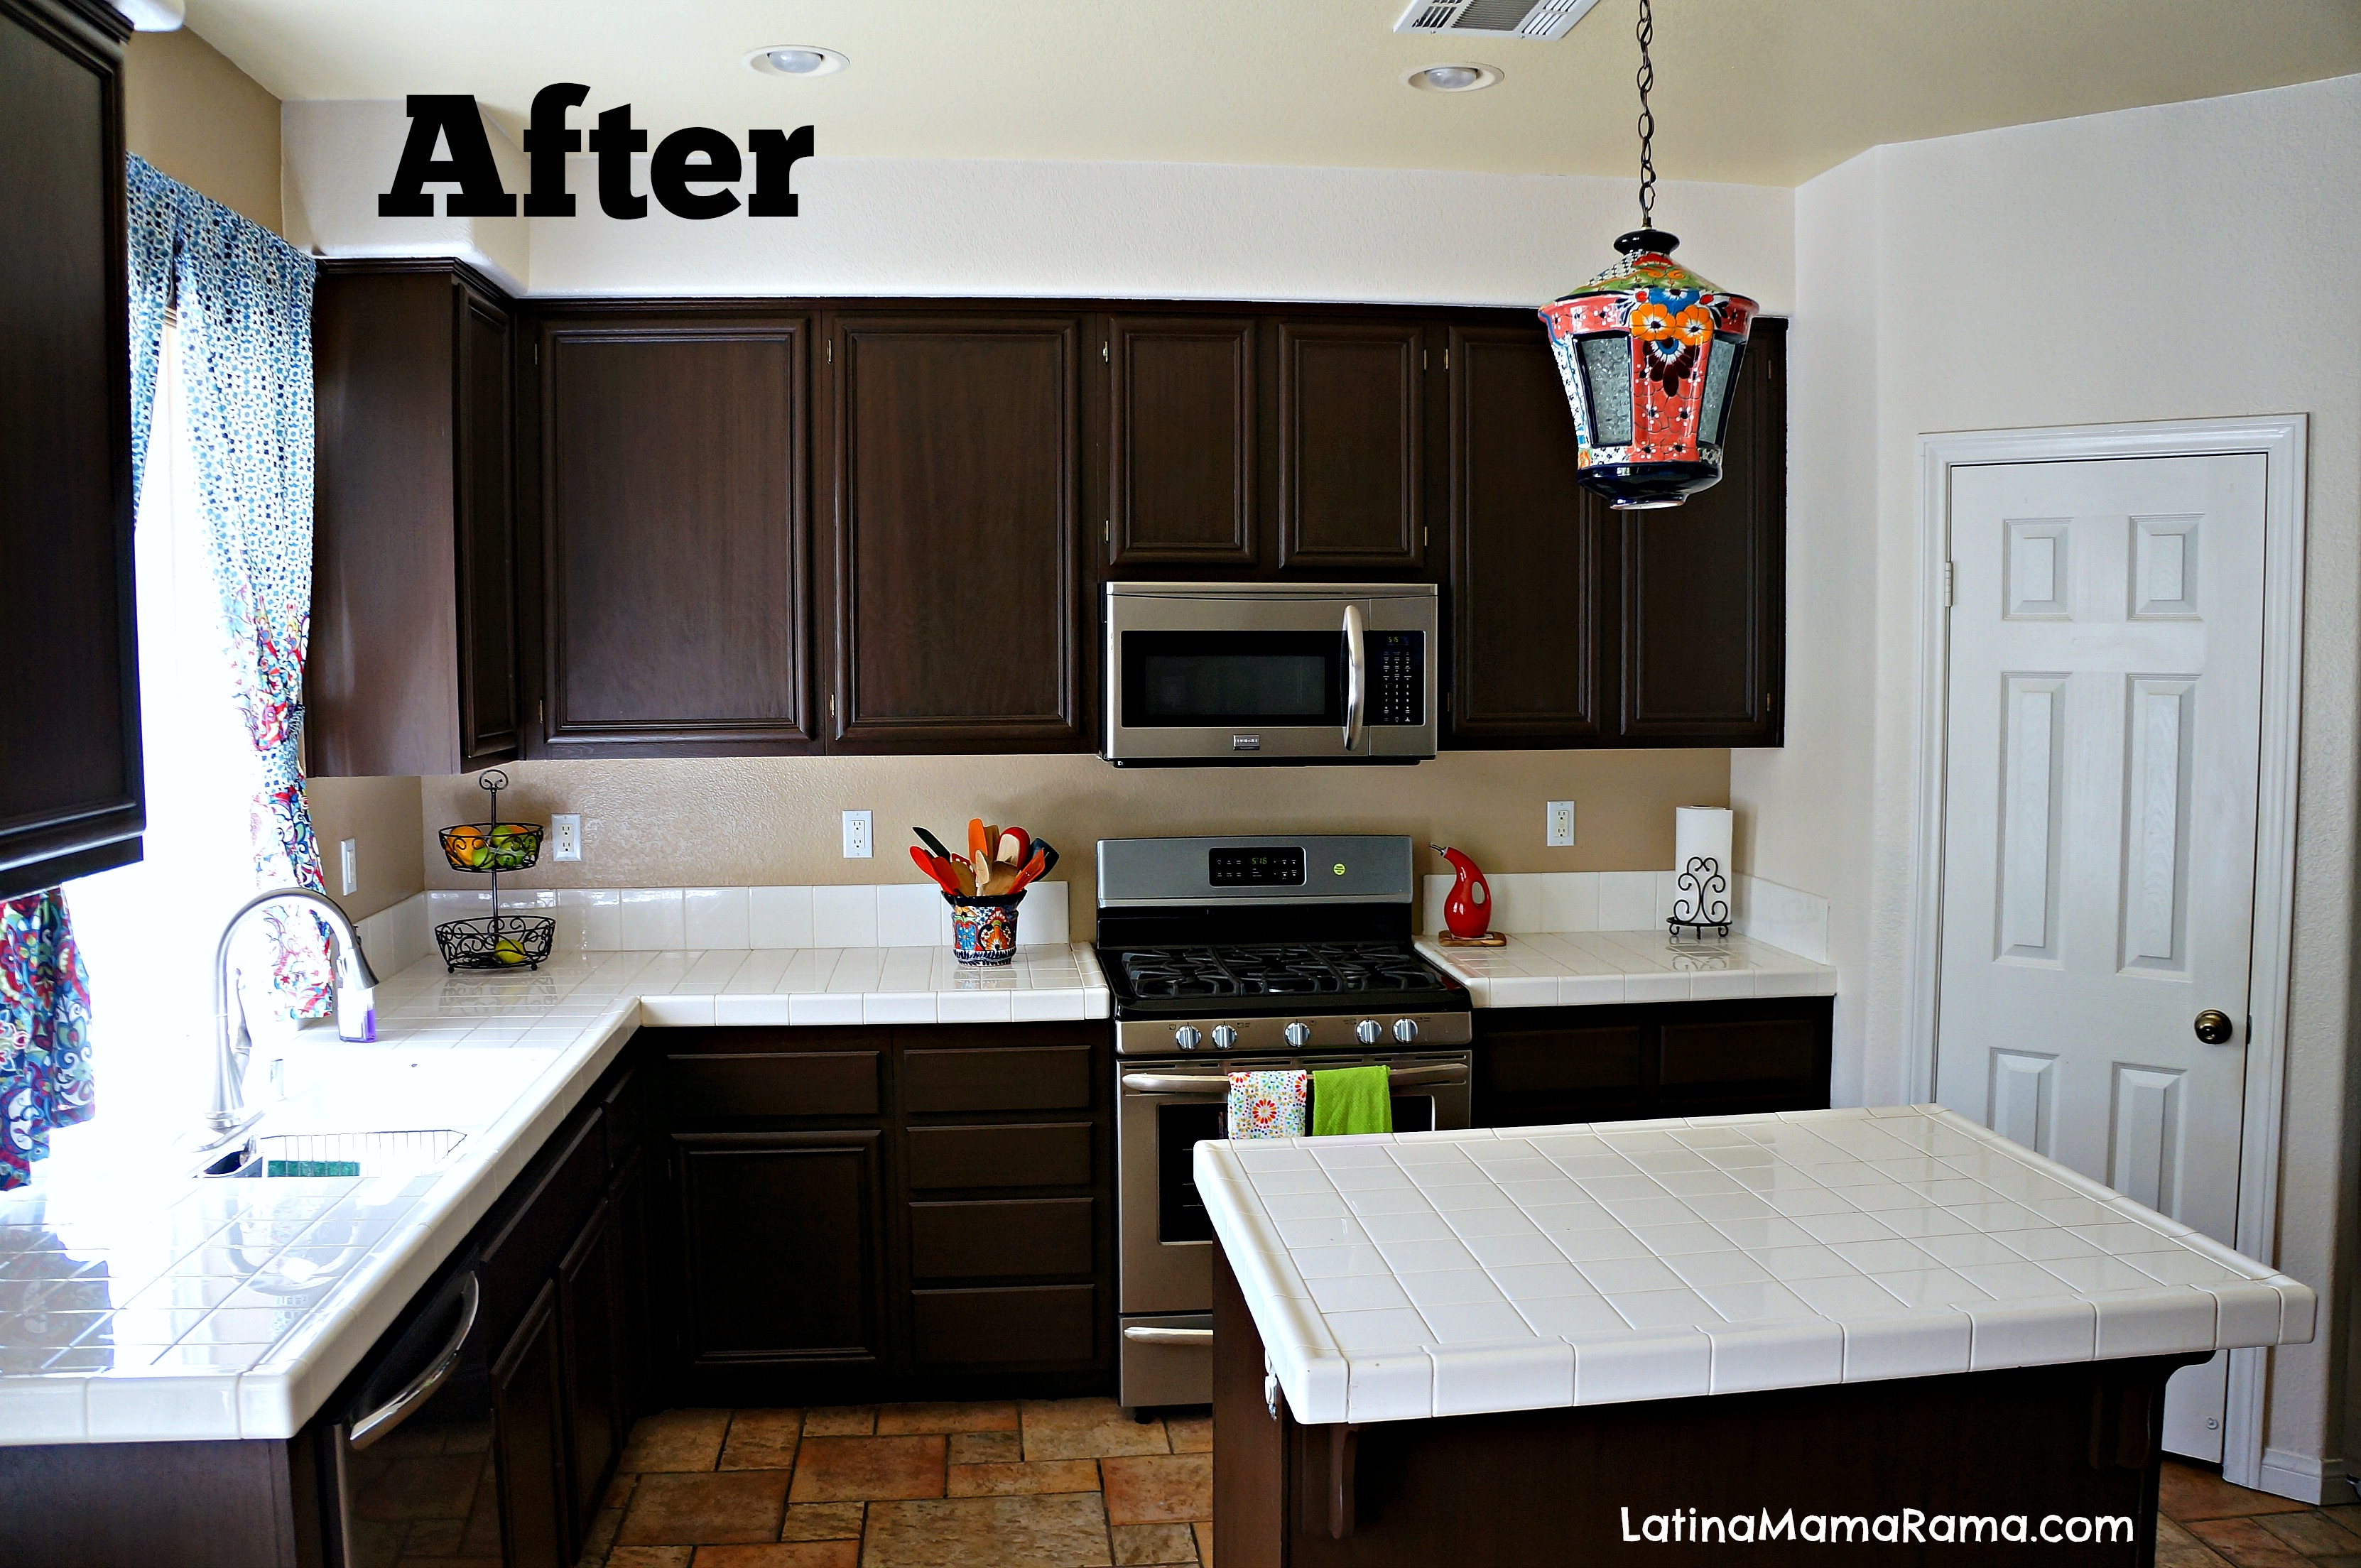 how to refinish your kitchen cabinets refinishing kitchen cabinets How to refinish your kitchen cabinets